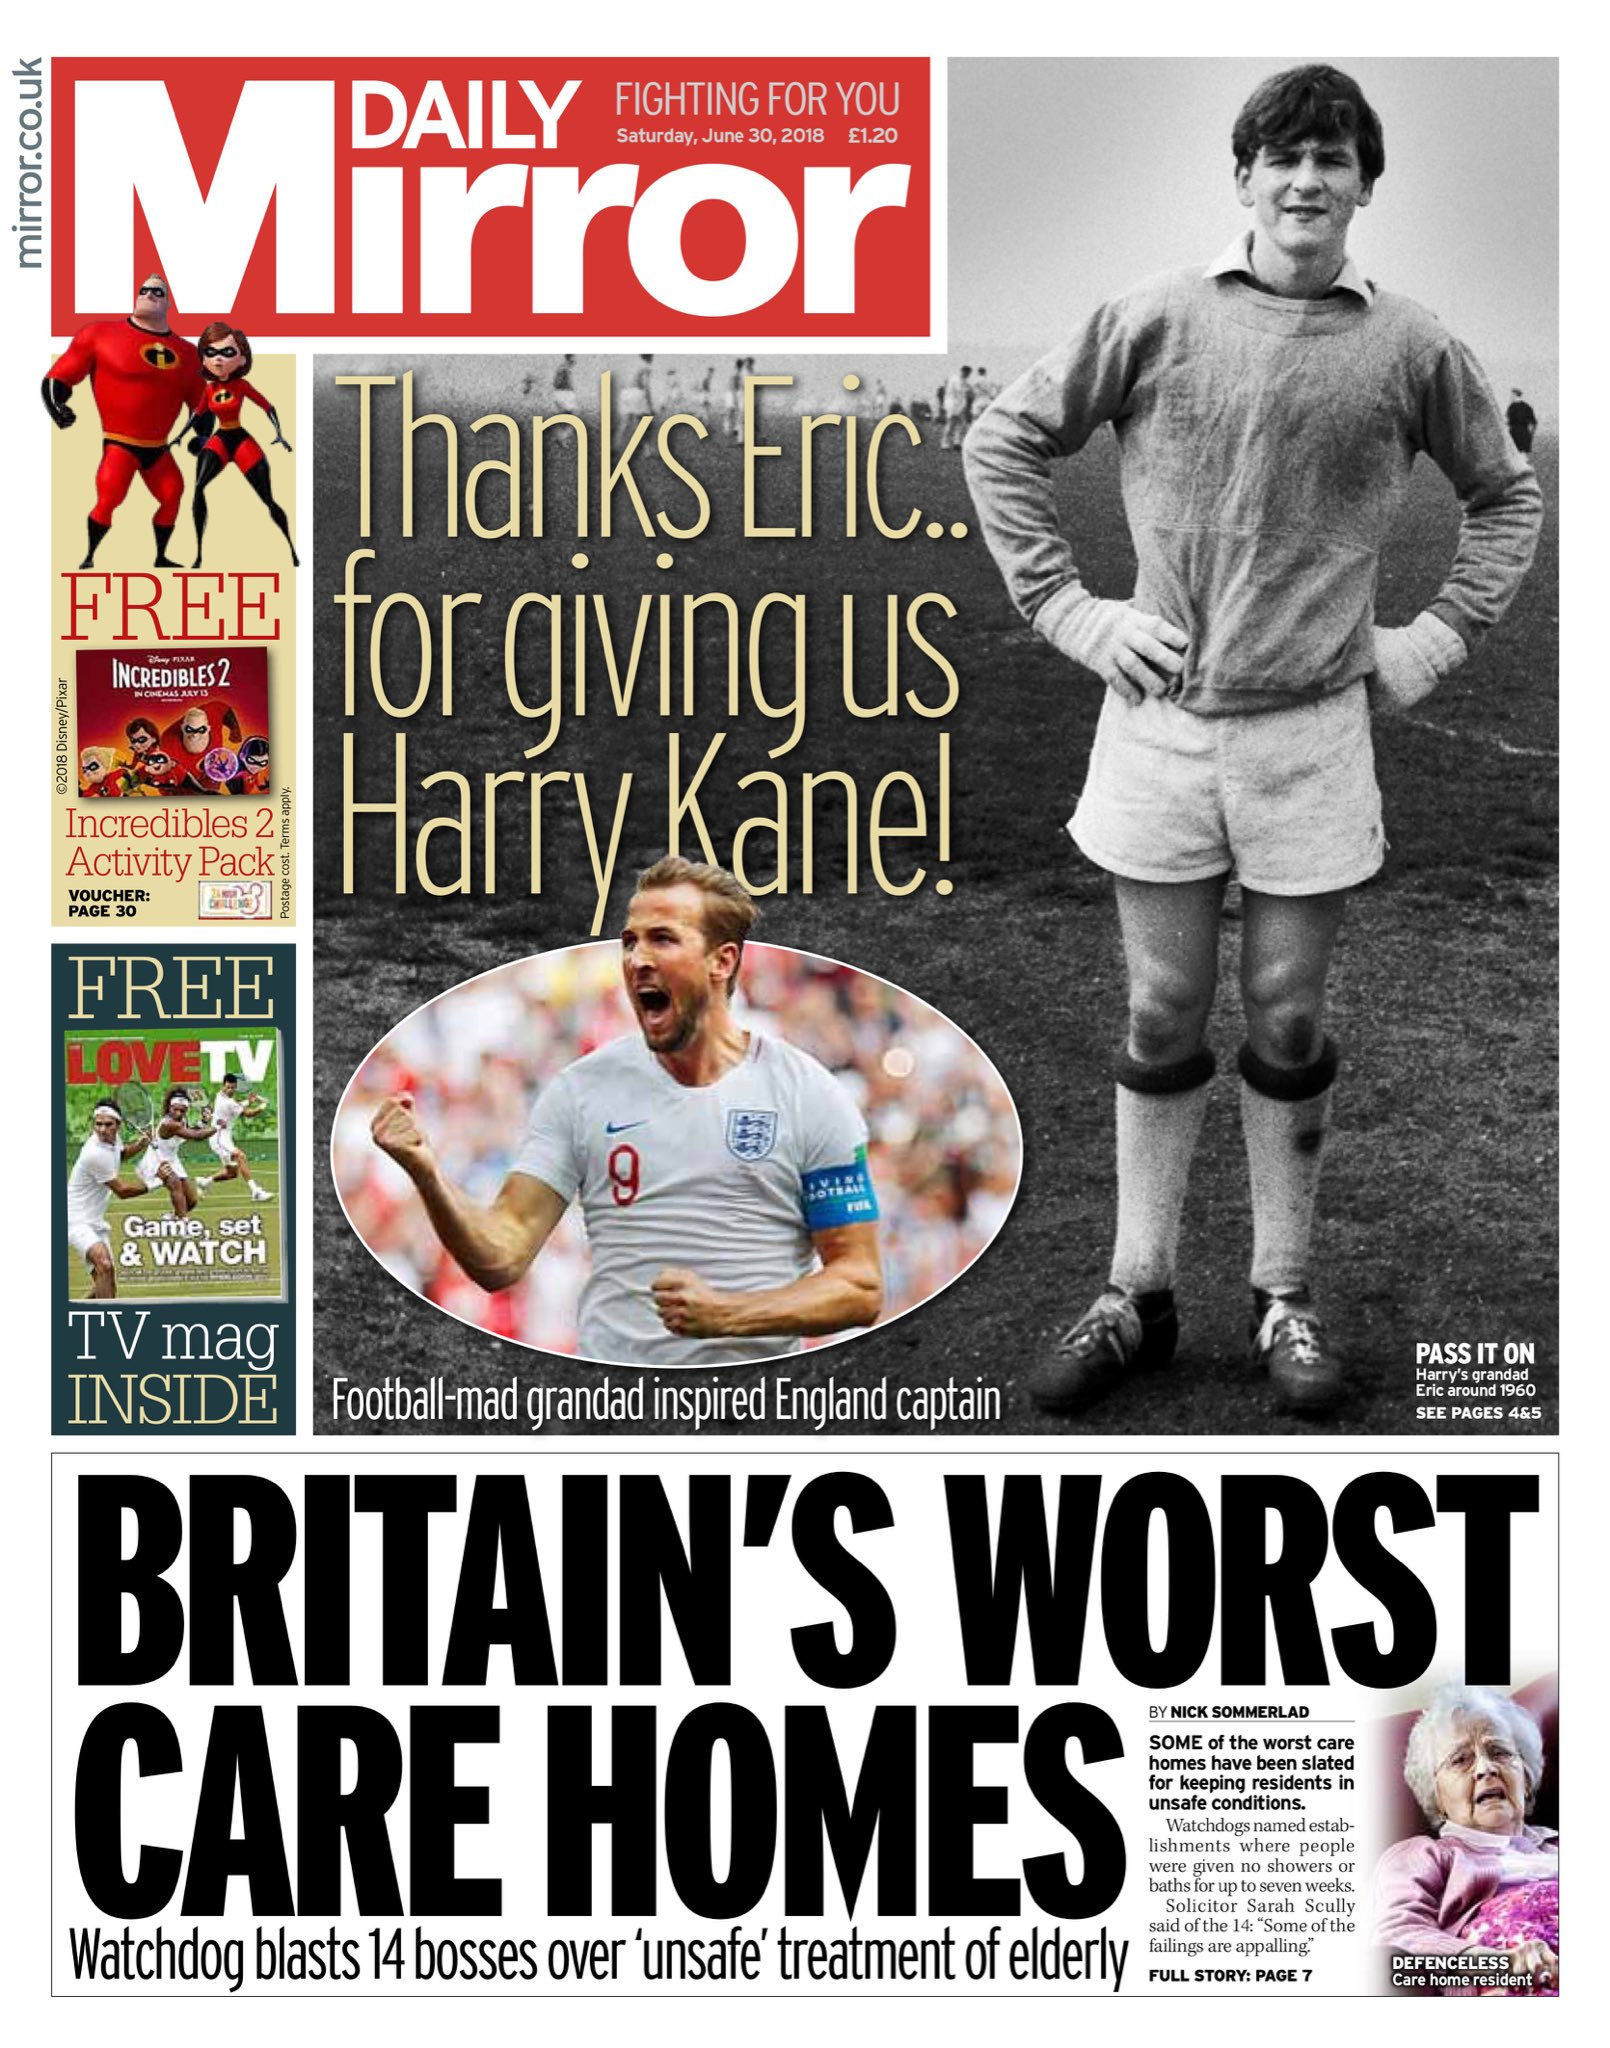 """Saturday's Daily MIRROR: """"Britain's Worst Care Homes"""" #bbcpapers #tomorrowspaperstoday https://t.co/2YJtds9G4h"""